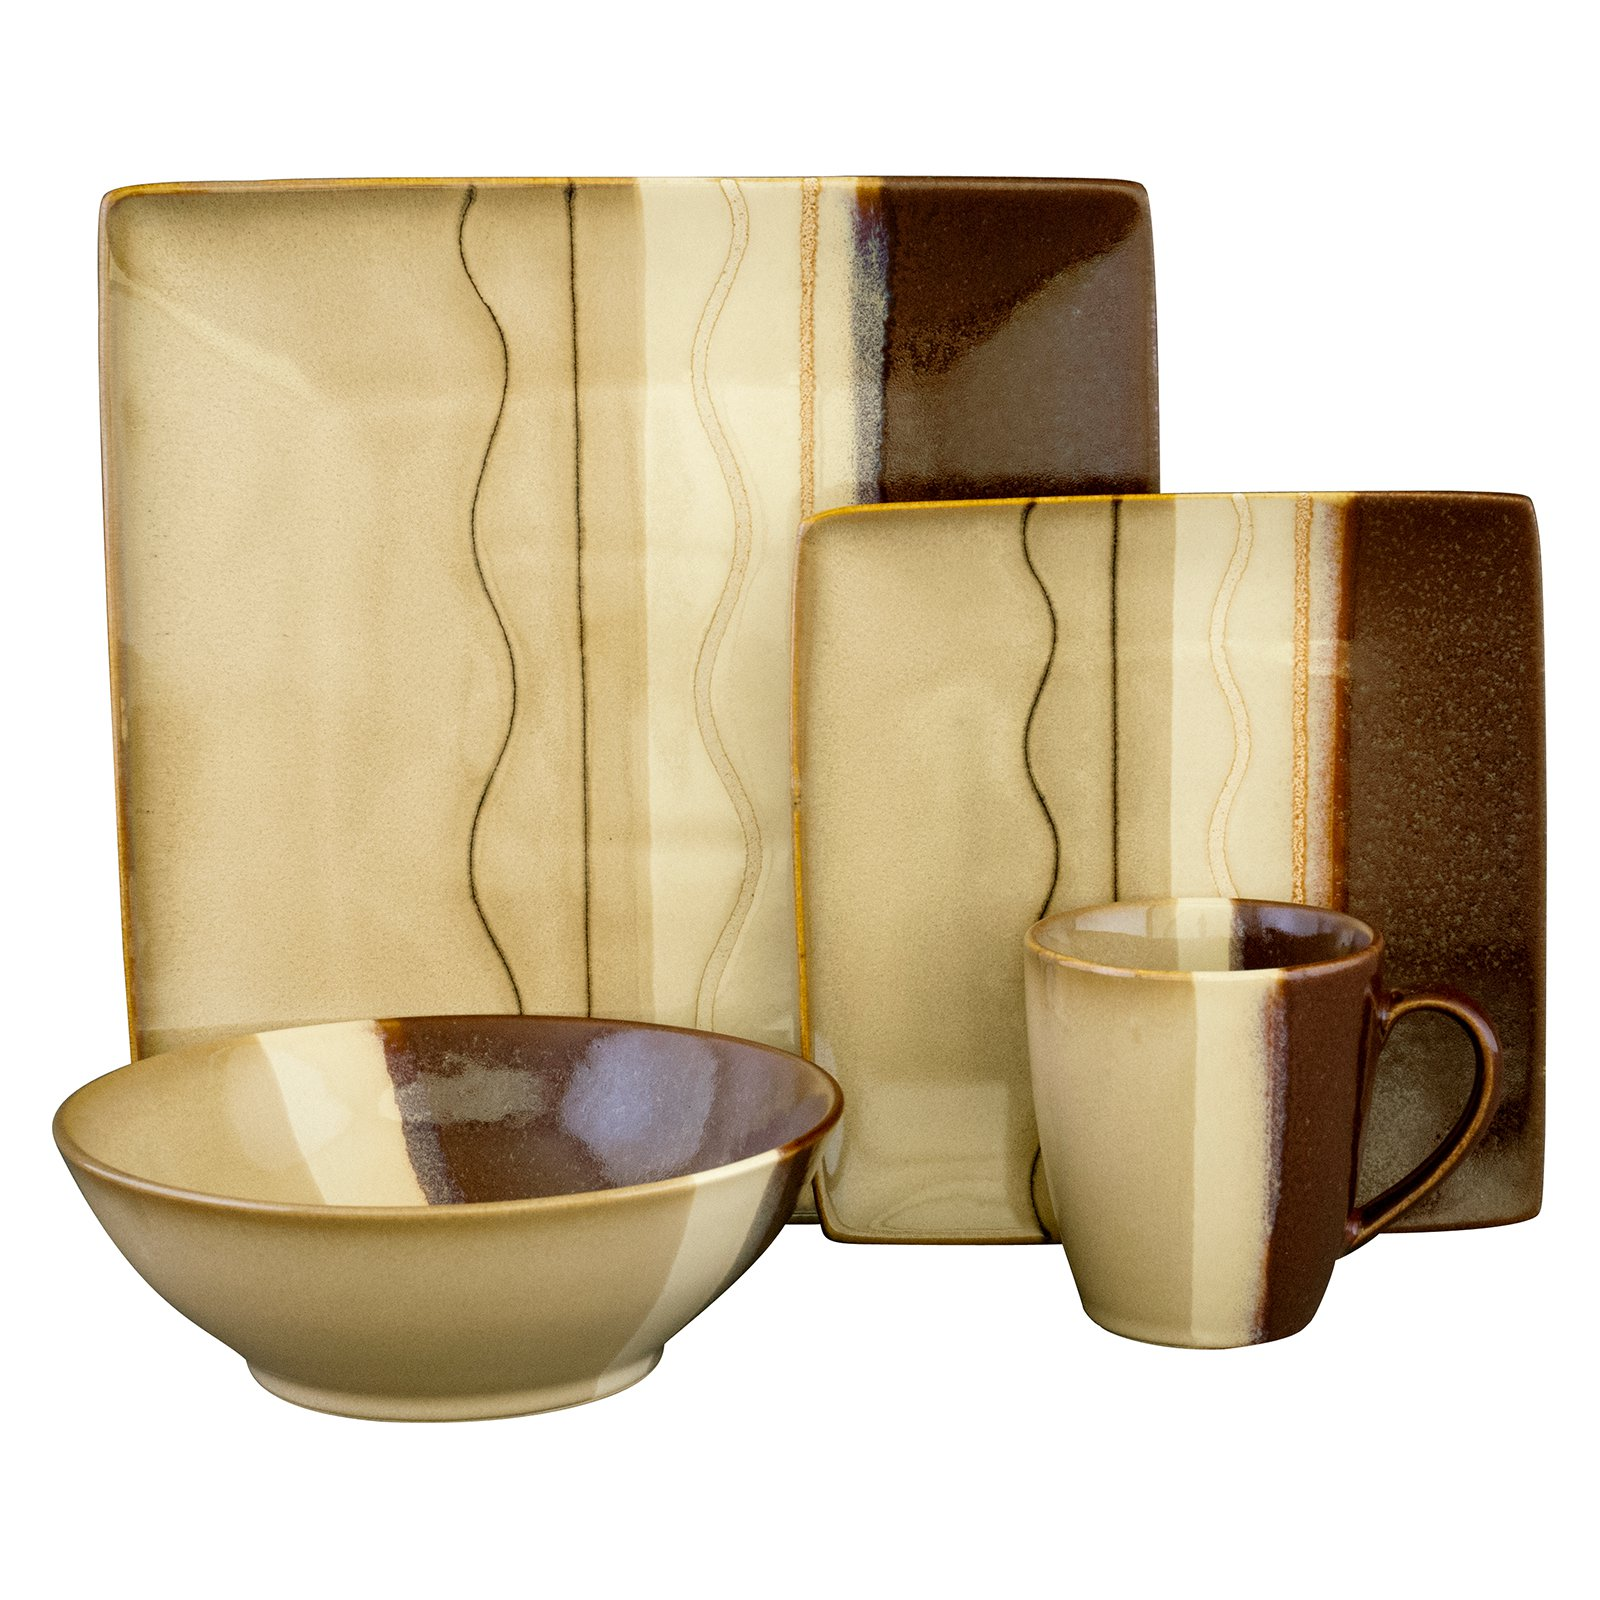 sc 1 st  Walmart & Sango Zanzibar Dinnerware - Brown - Set of 16 - Walmart.com